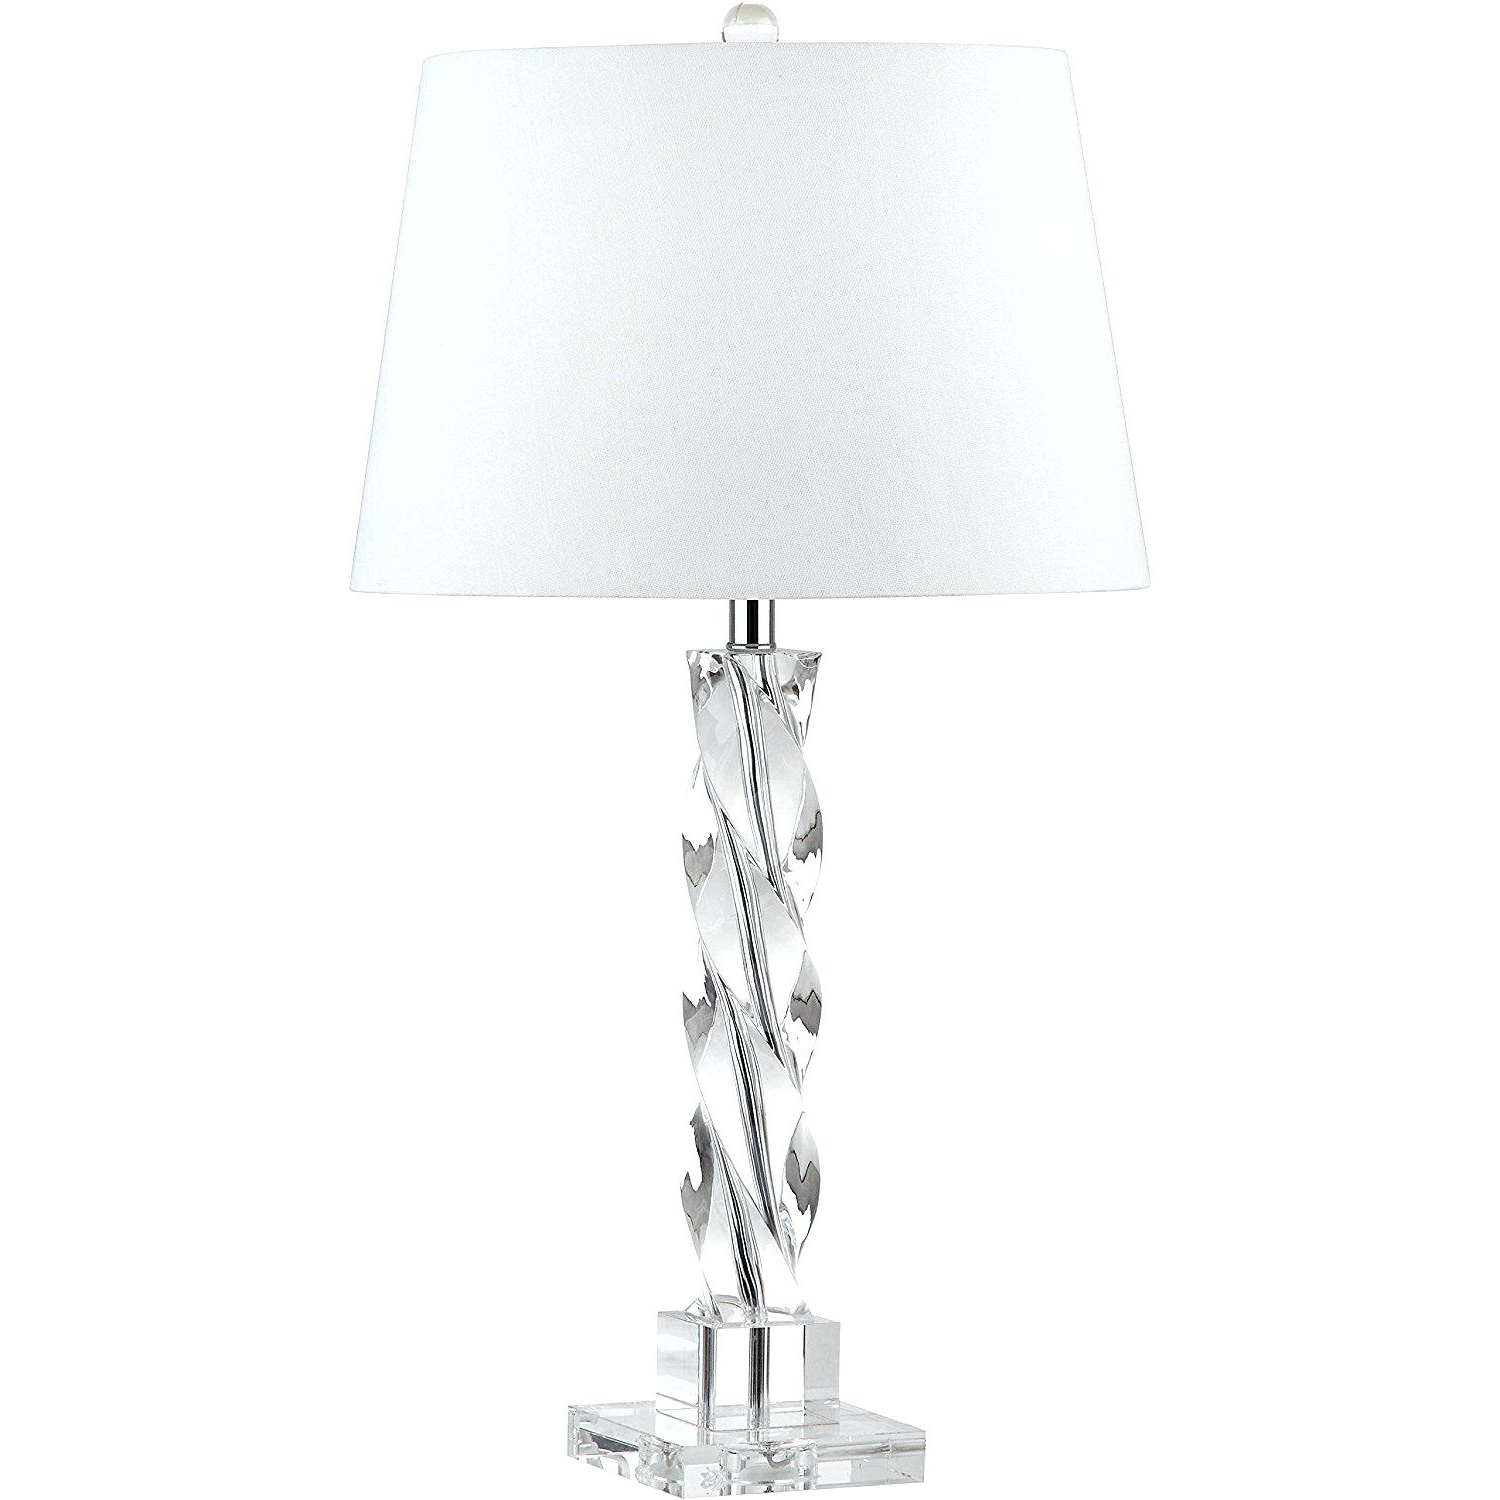 Most Recently Released Overstock Table Lamps Most Magic White Lamp Lamp Shades For Table Within Overstock Living Room Table Lamps (View 13 of 20)